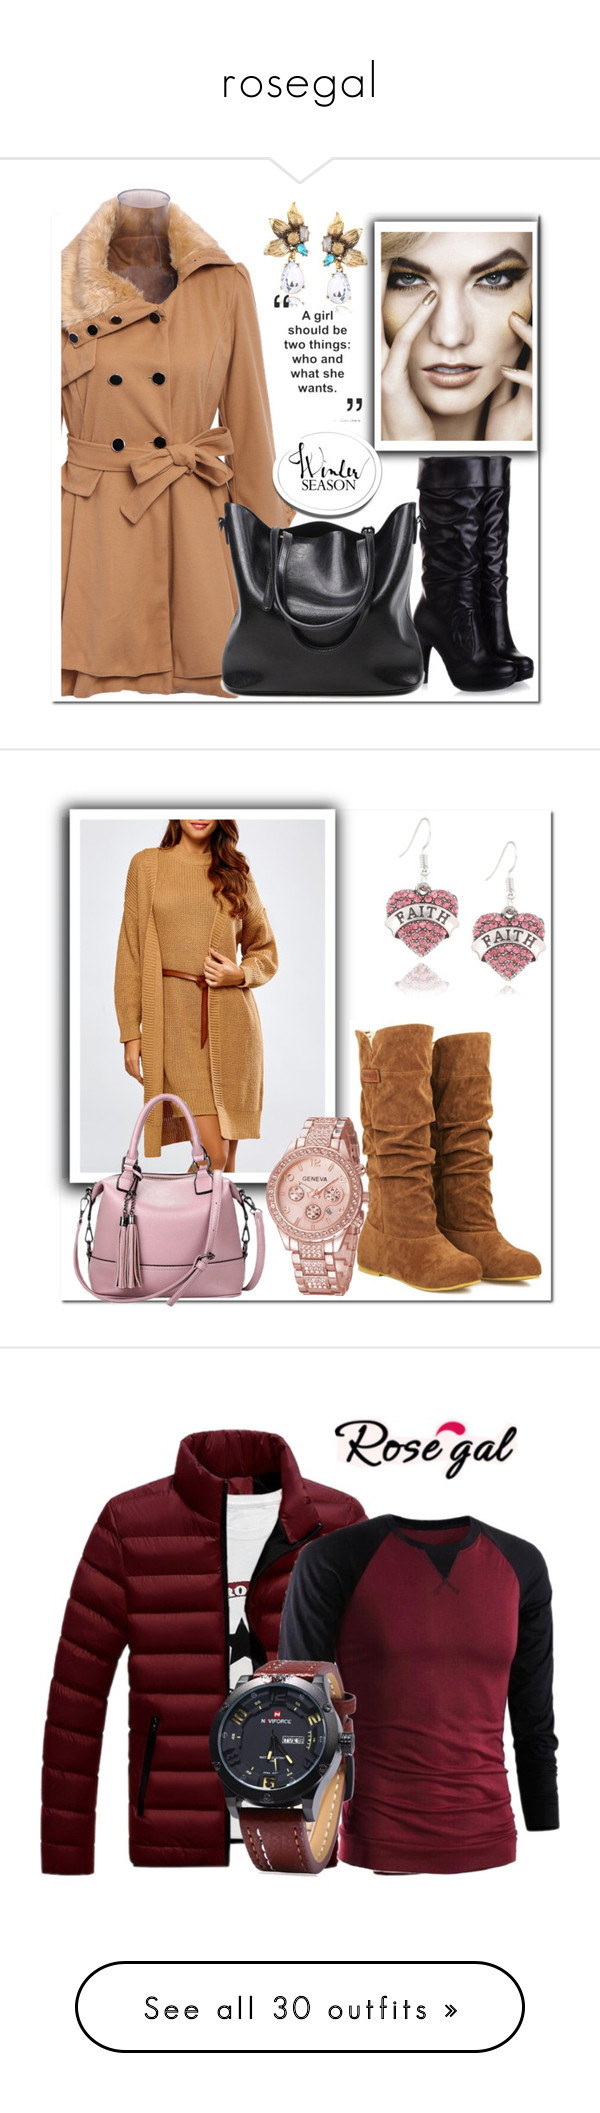 """""""rosegal"""" by melee-879 ❤ liked on Polyvore featuring Winter, casualoutfit, women, men's fashion, menswear, men, vintage, denim, skirt and dress"""